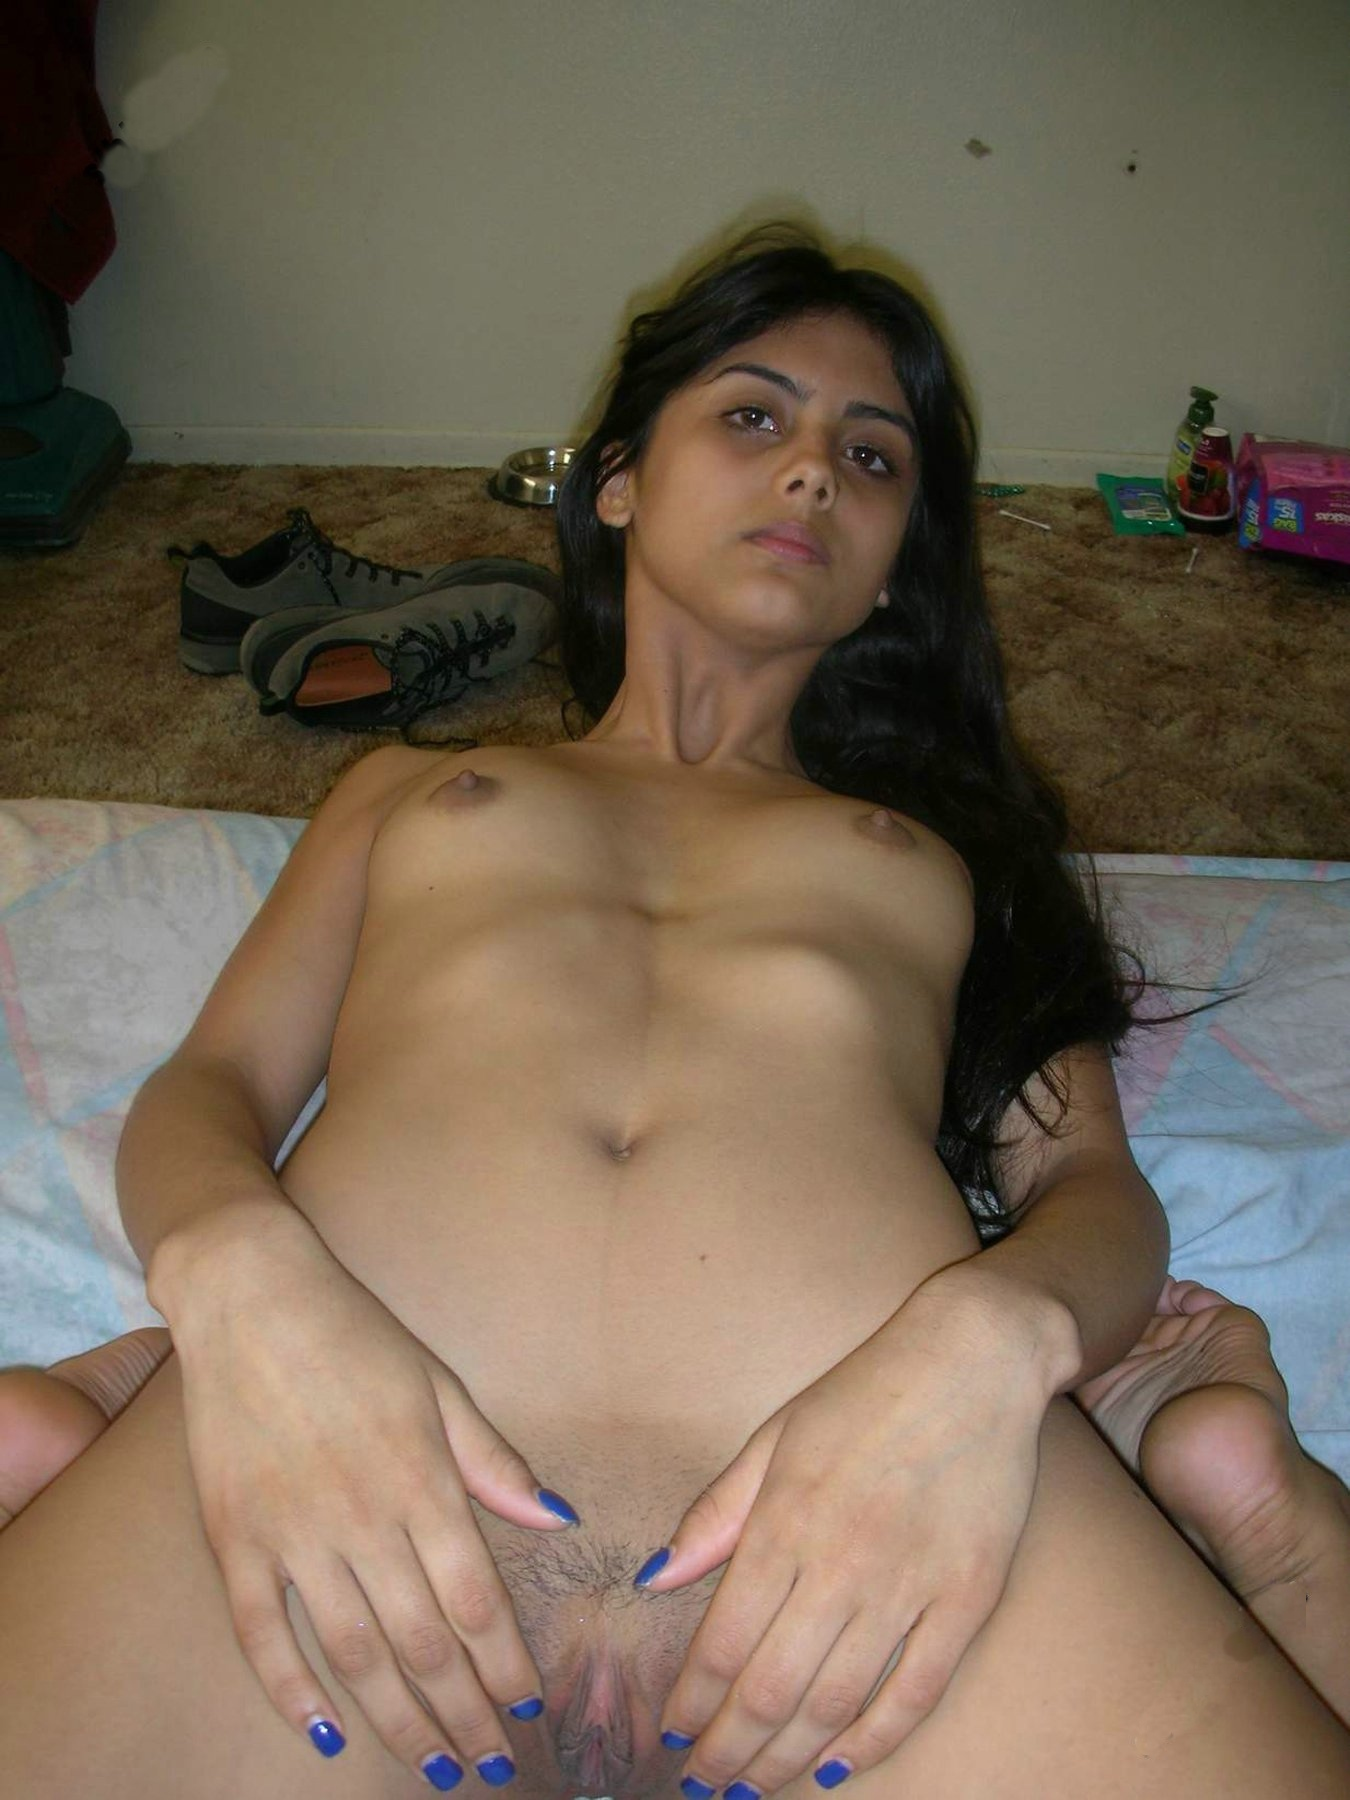 Imej boobs indian tits pussy women